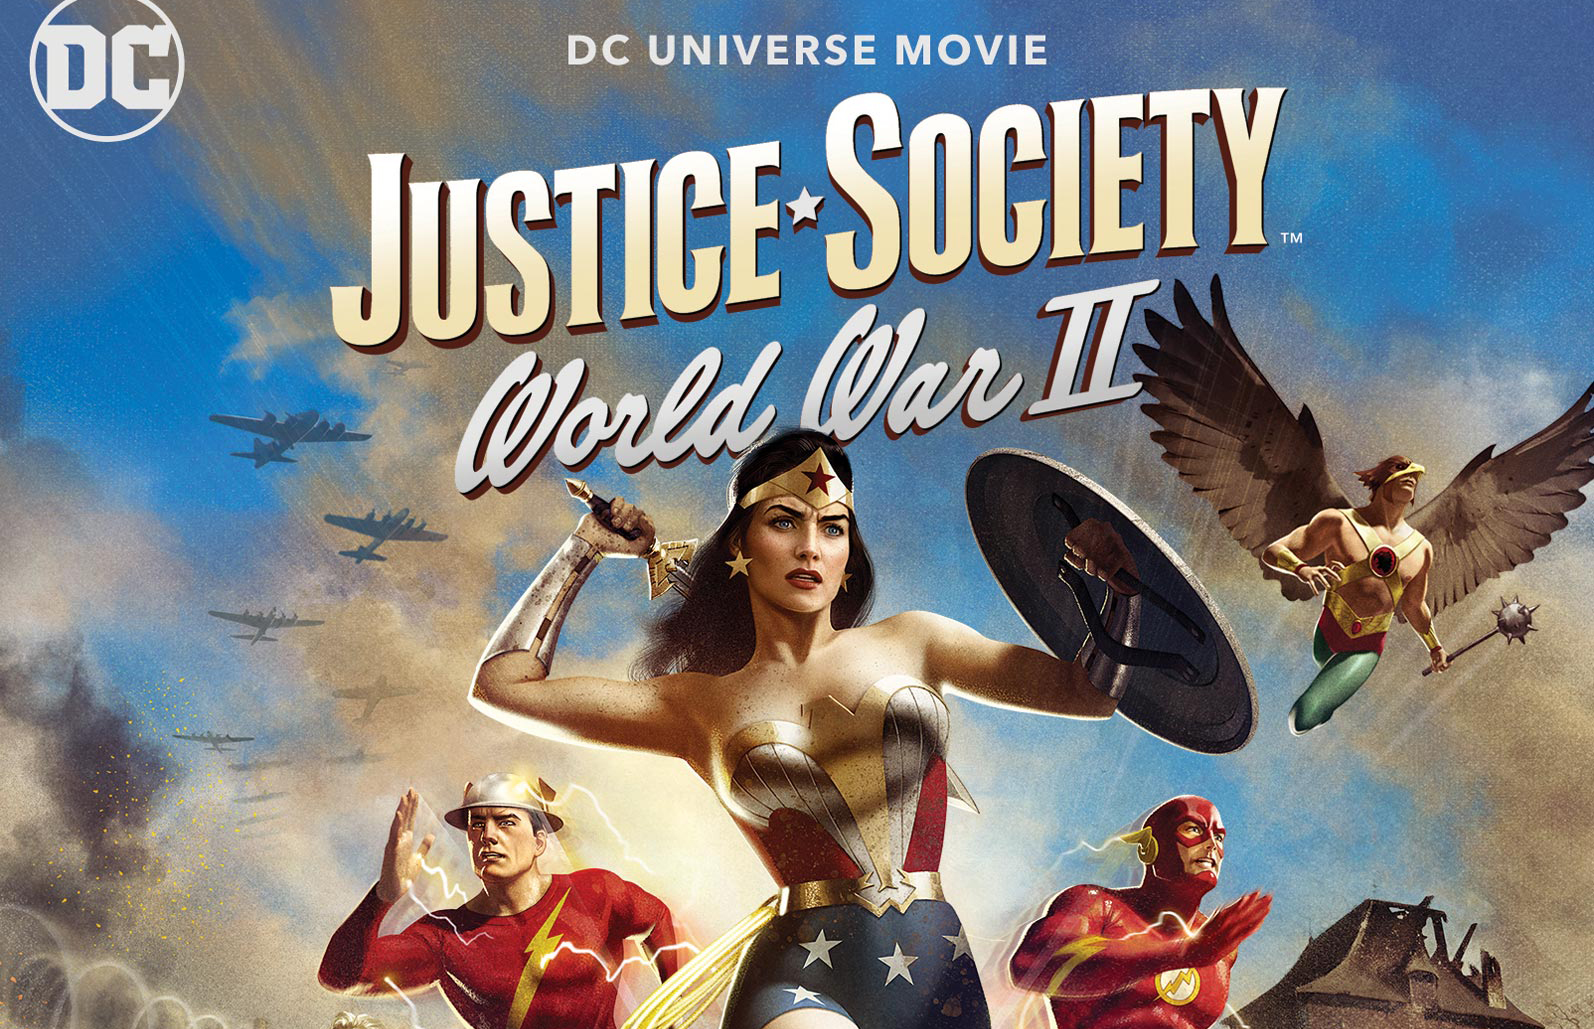 JusticeSociety_WWII_1000783437_BD_OSLV_2D_TEMP_DOM_SKEW-banner